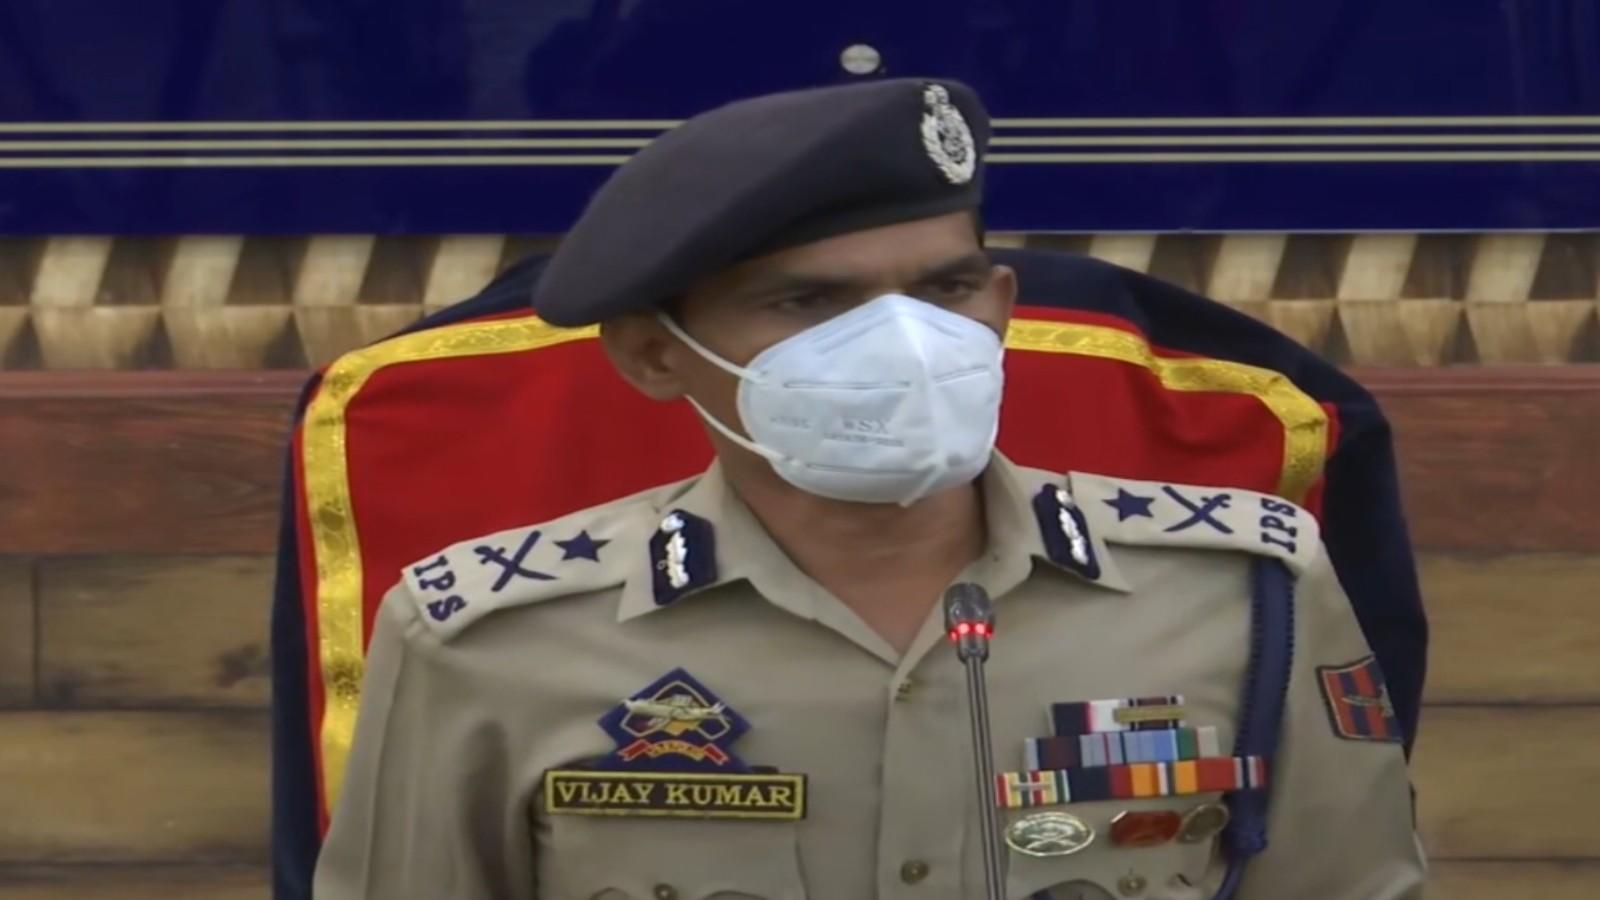 bdc-chairman-possibly-shot-dead-by-let-operatives-in-budgam-igp-vijay-kumar